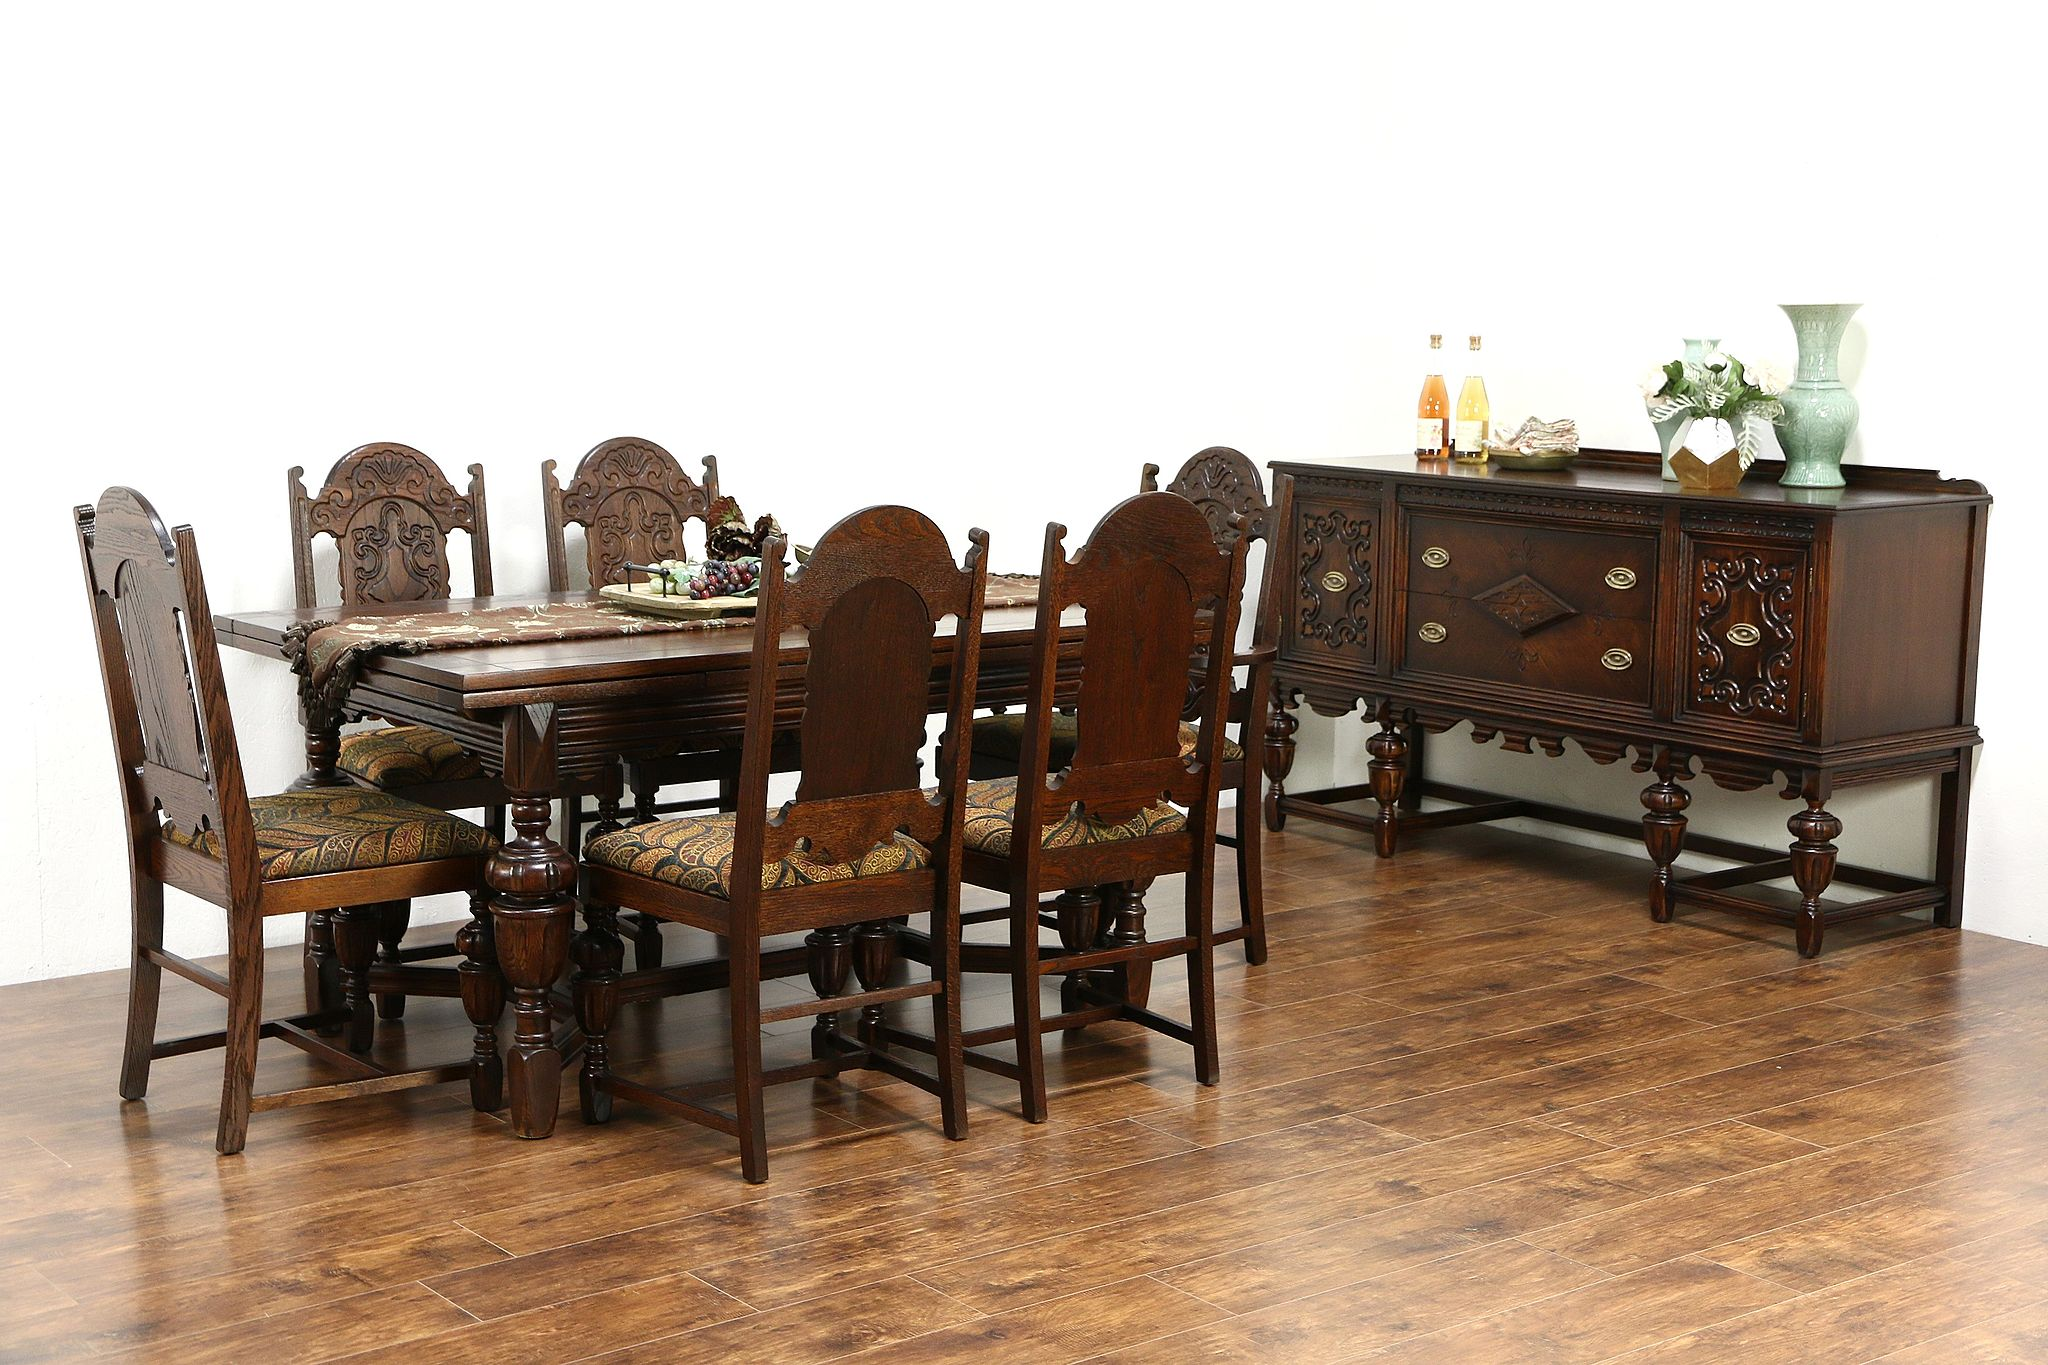 English Tudor 1920 Antique Oak Dining Set Table 6 Chairs New Upholstery Photo